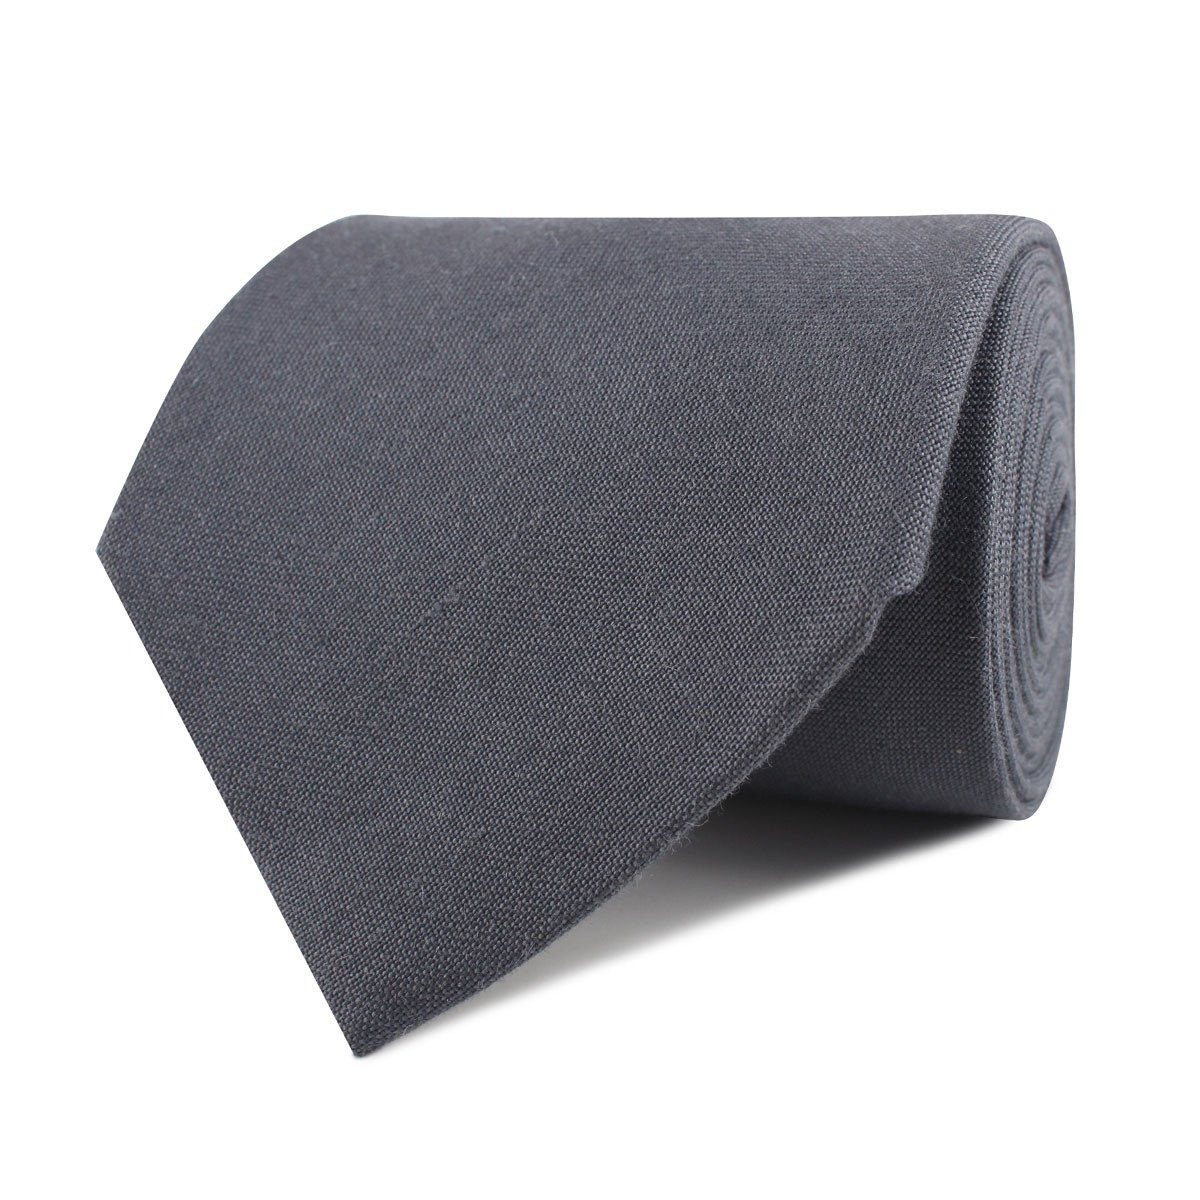 InStitchu Accessories tie  OTAA Charcoal Grey Slub Linen Necktie